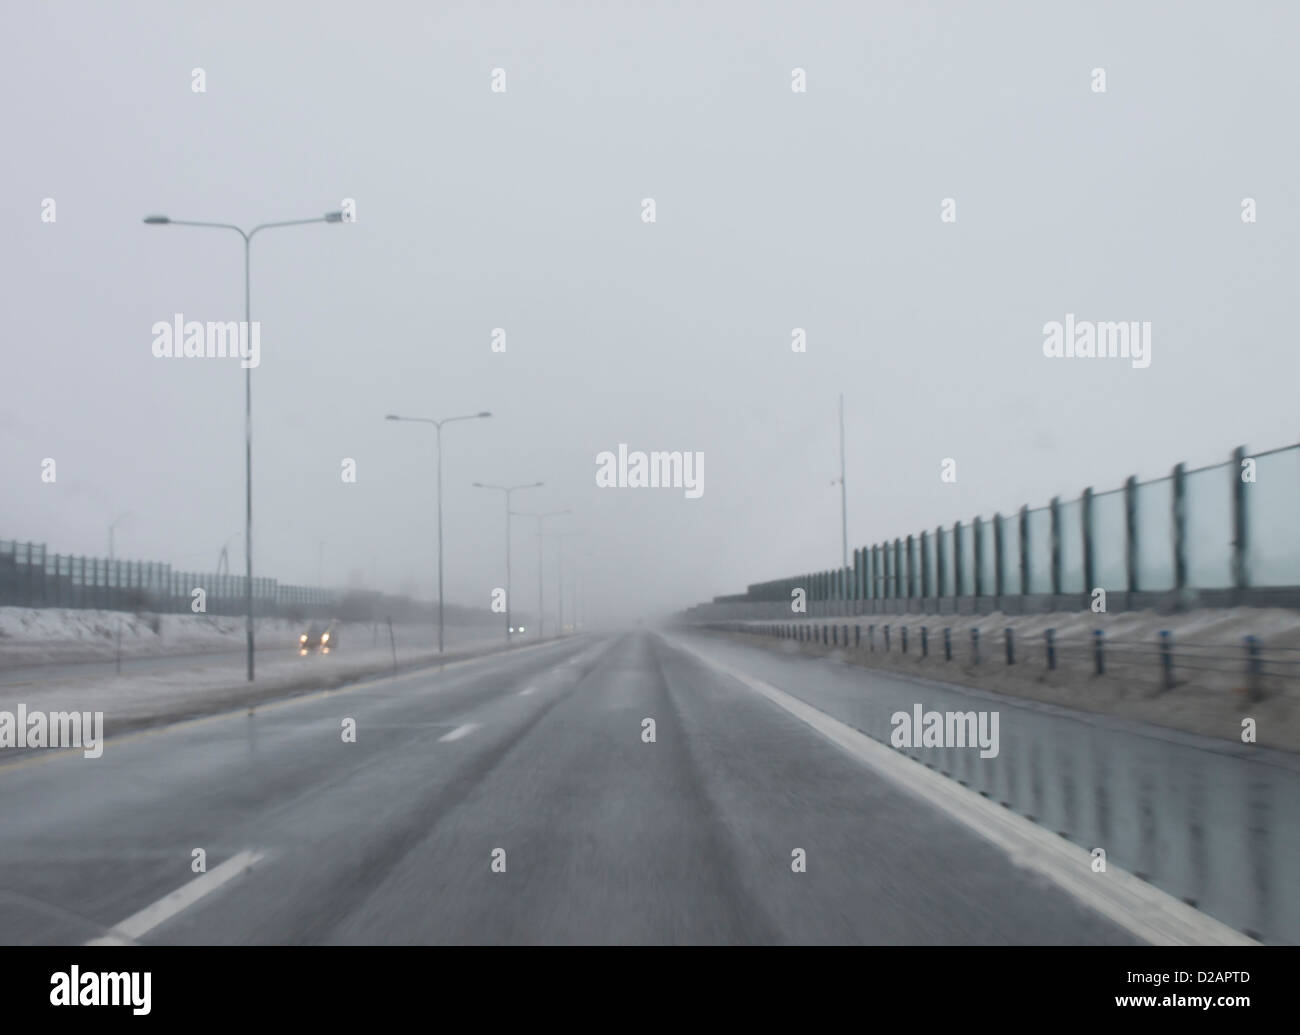 low visibility, poor driving conditions, sleet, fog and snow on the highway, typical winter conditions in Norway - Stock Image